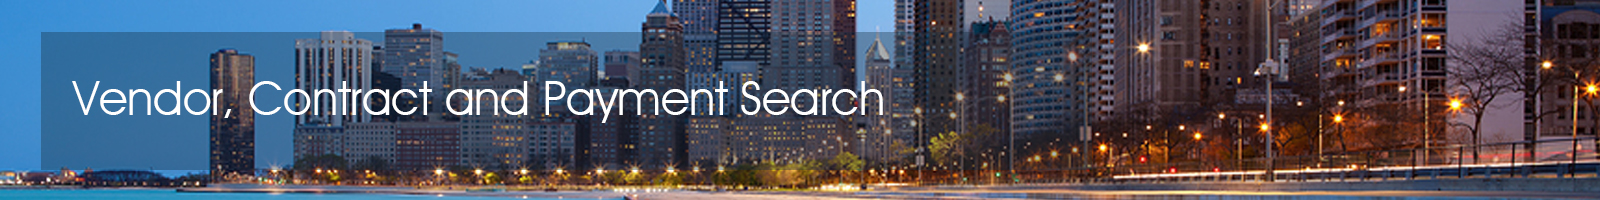 vendor contract and payment search bid tracker search